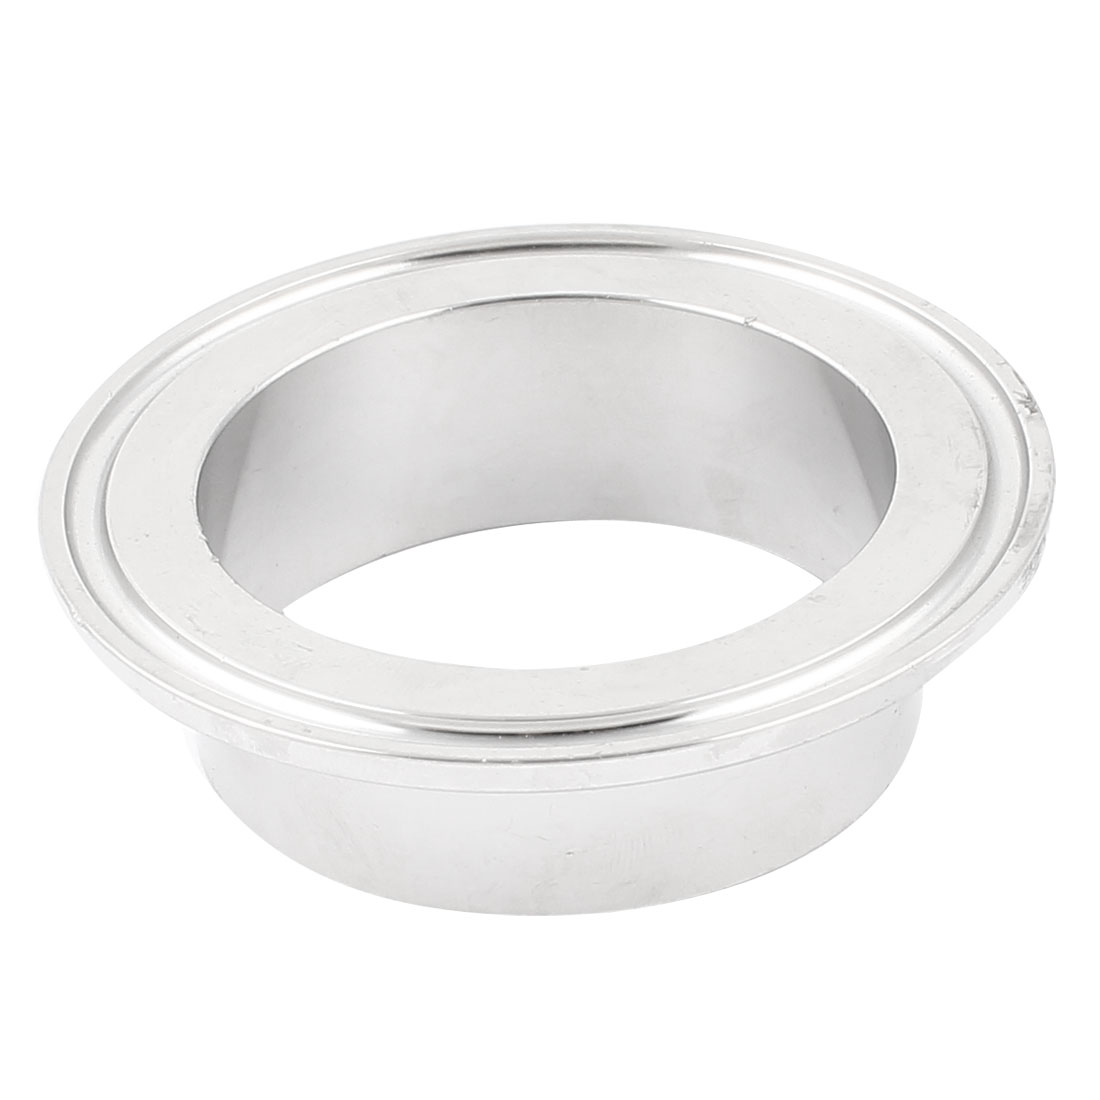 Silver Tone Tri-clamp Type Stainless Steel Hygienic Sanitary Weld Pipe Clamp Clip Ferrule Fitting 77mm